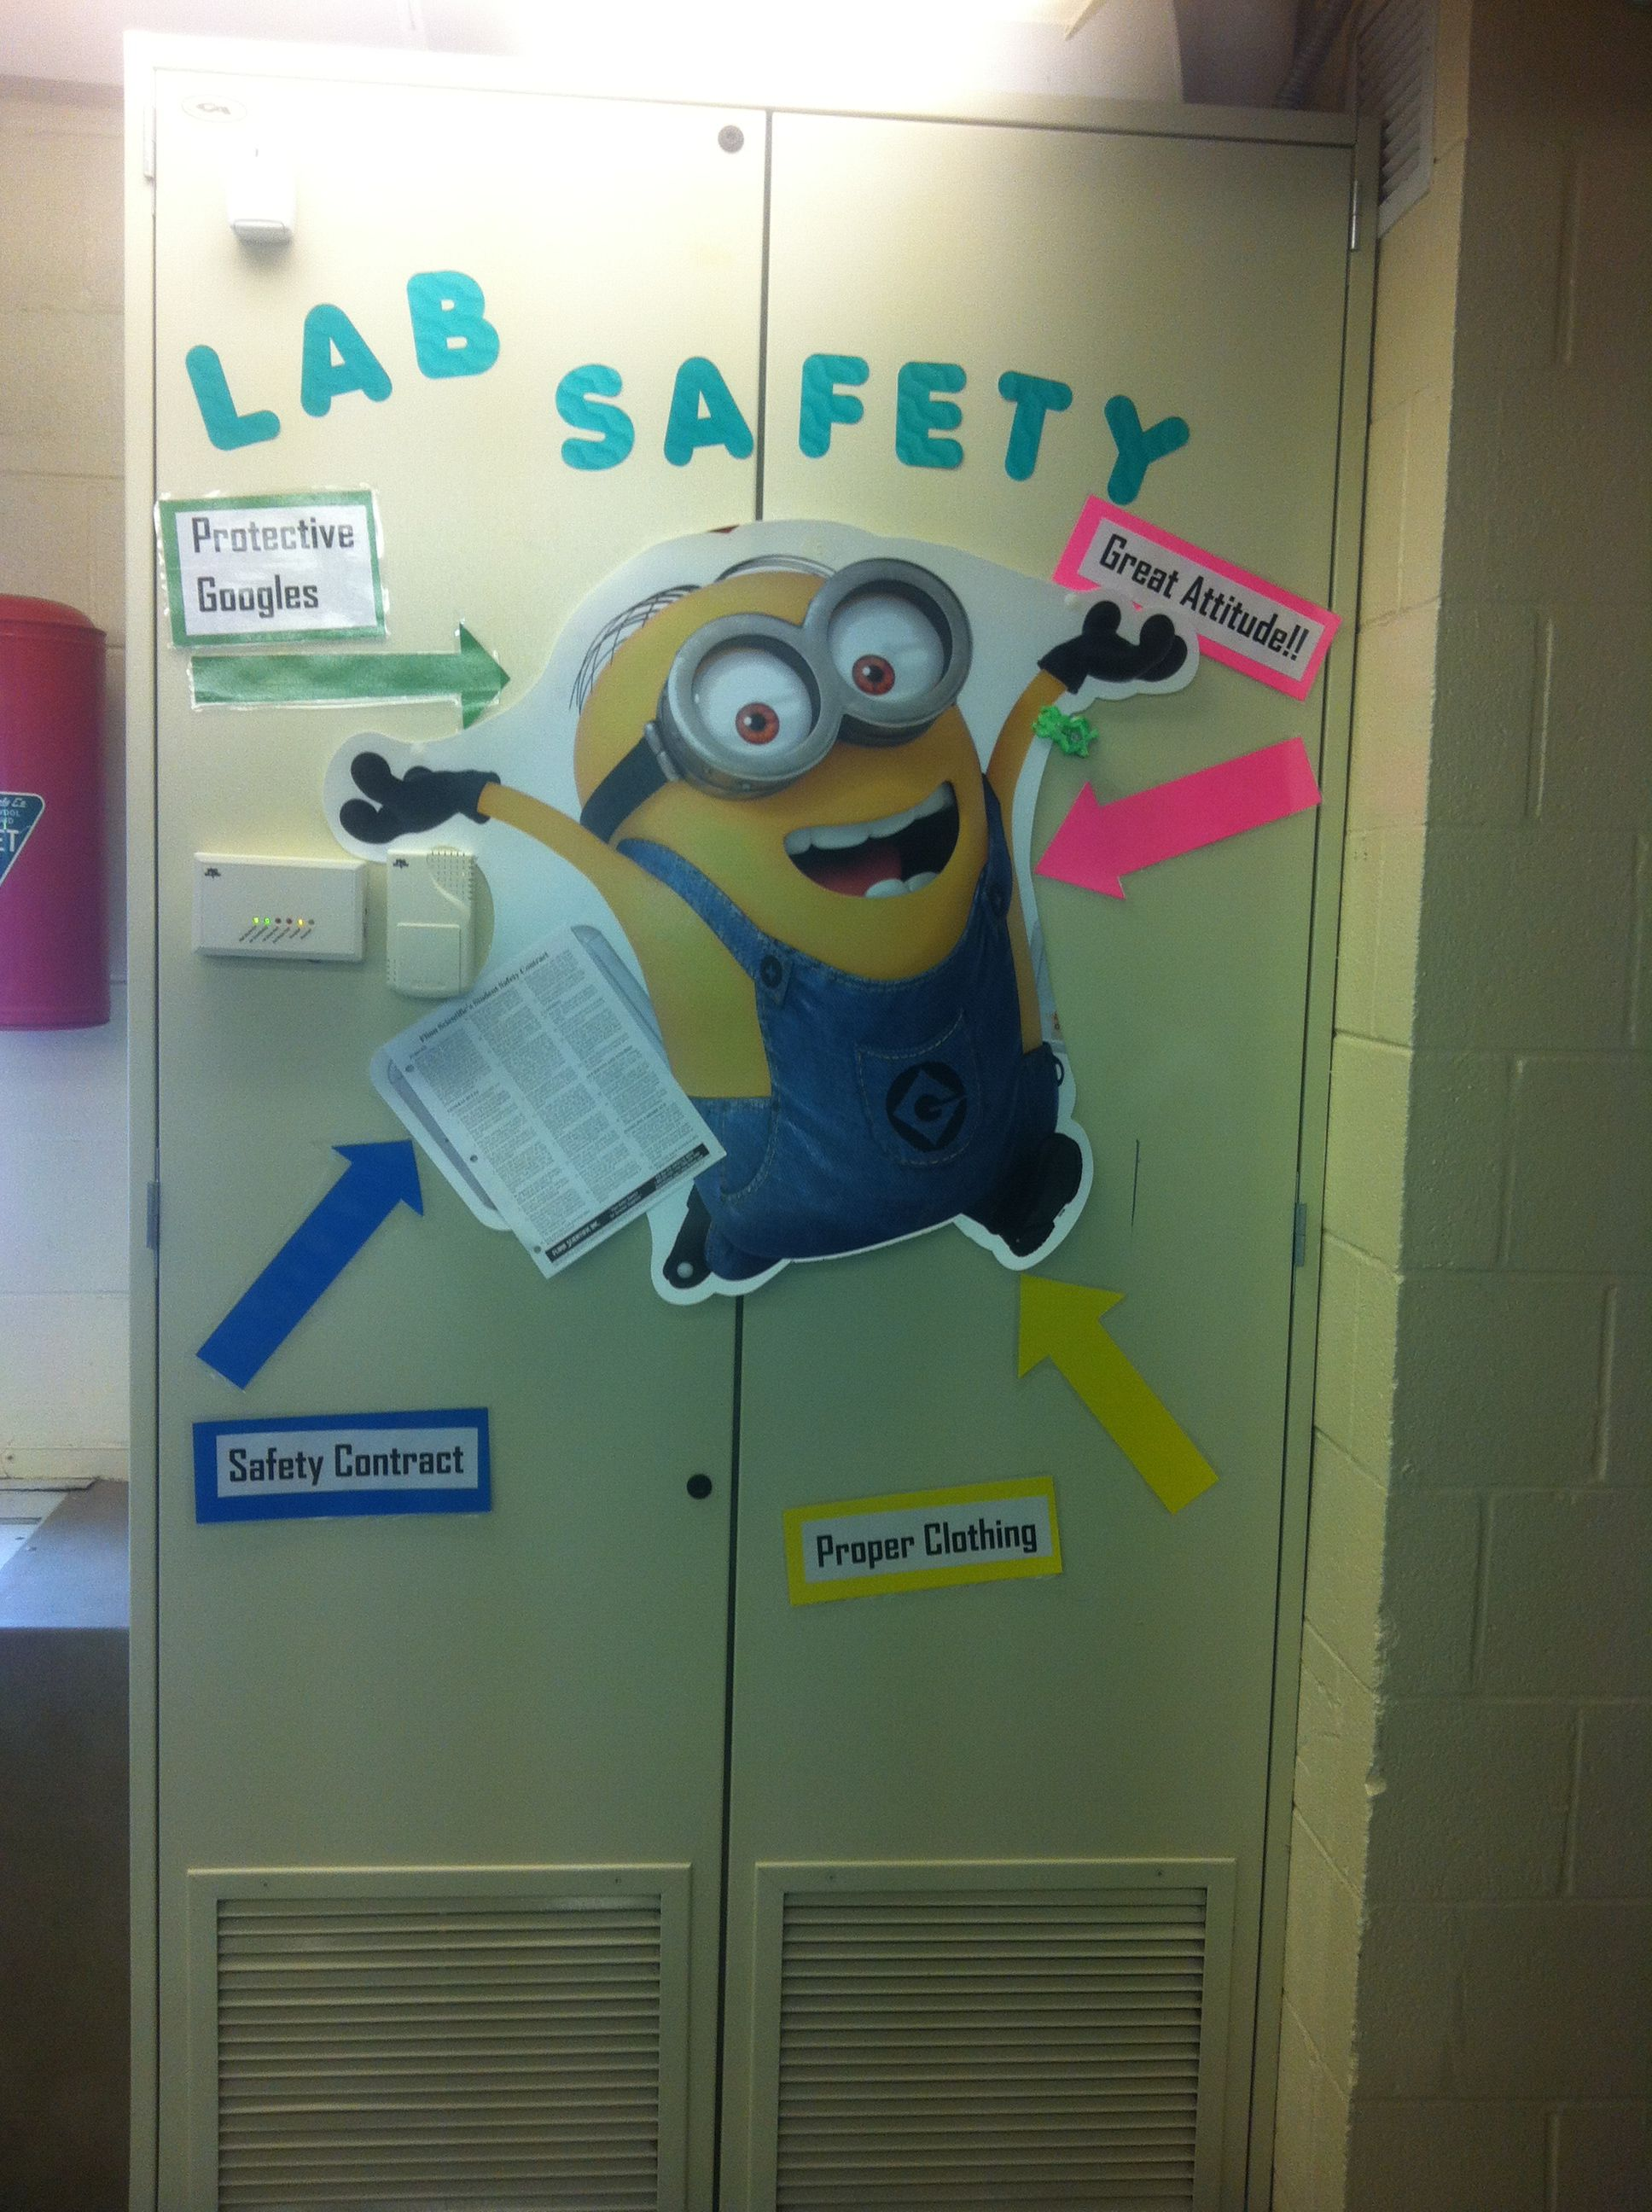 Middle School Science Lab Safety Fun Really Any Excuse To Put A Minion In My Classroom